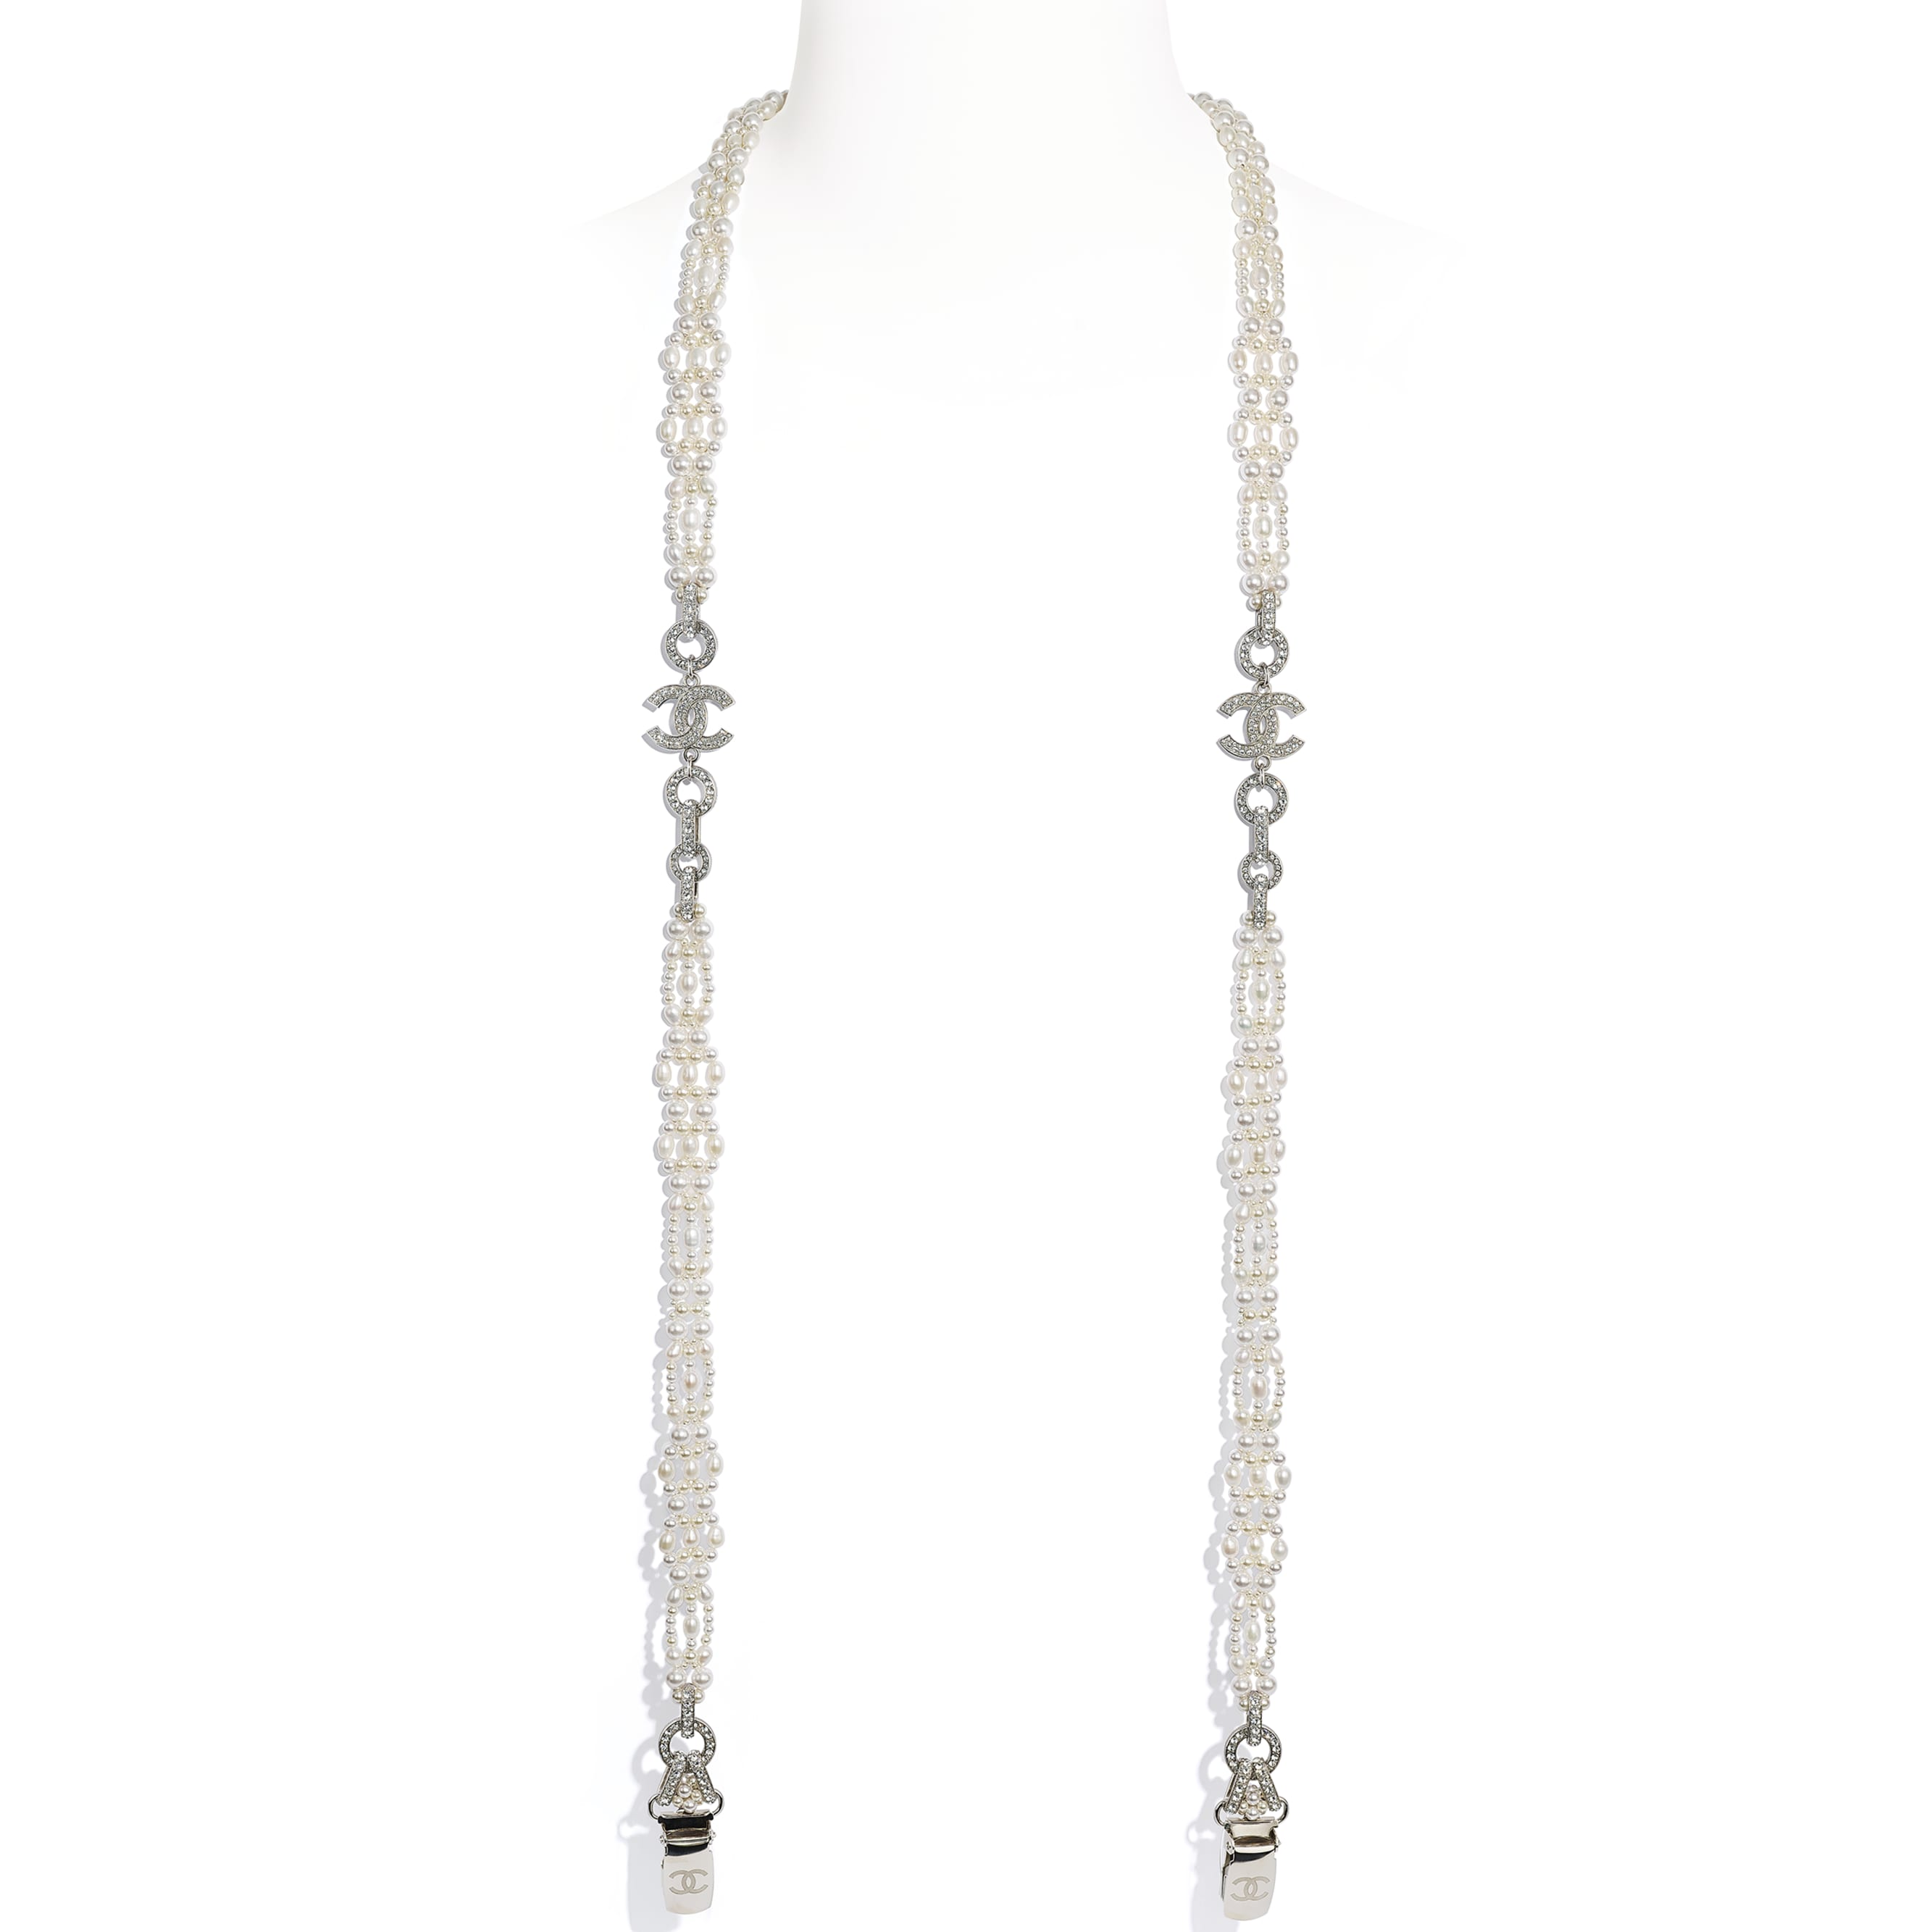 Suspenders - Silver, Pearly White, Black & Crystal - Metal, Cultured Freshwater Pearls, Glass Pearls, Lambskin & Strass - CHANEL - Alternative view - see standard sized version